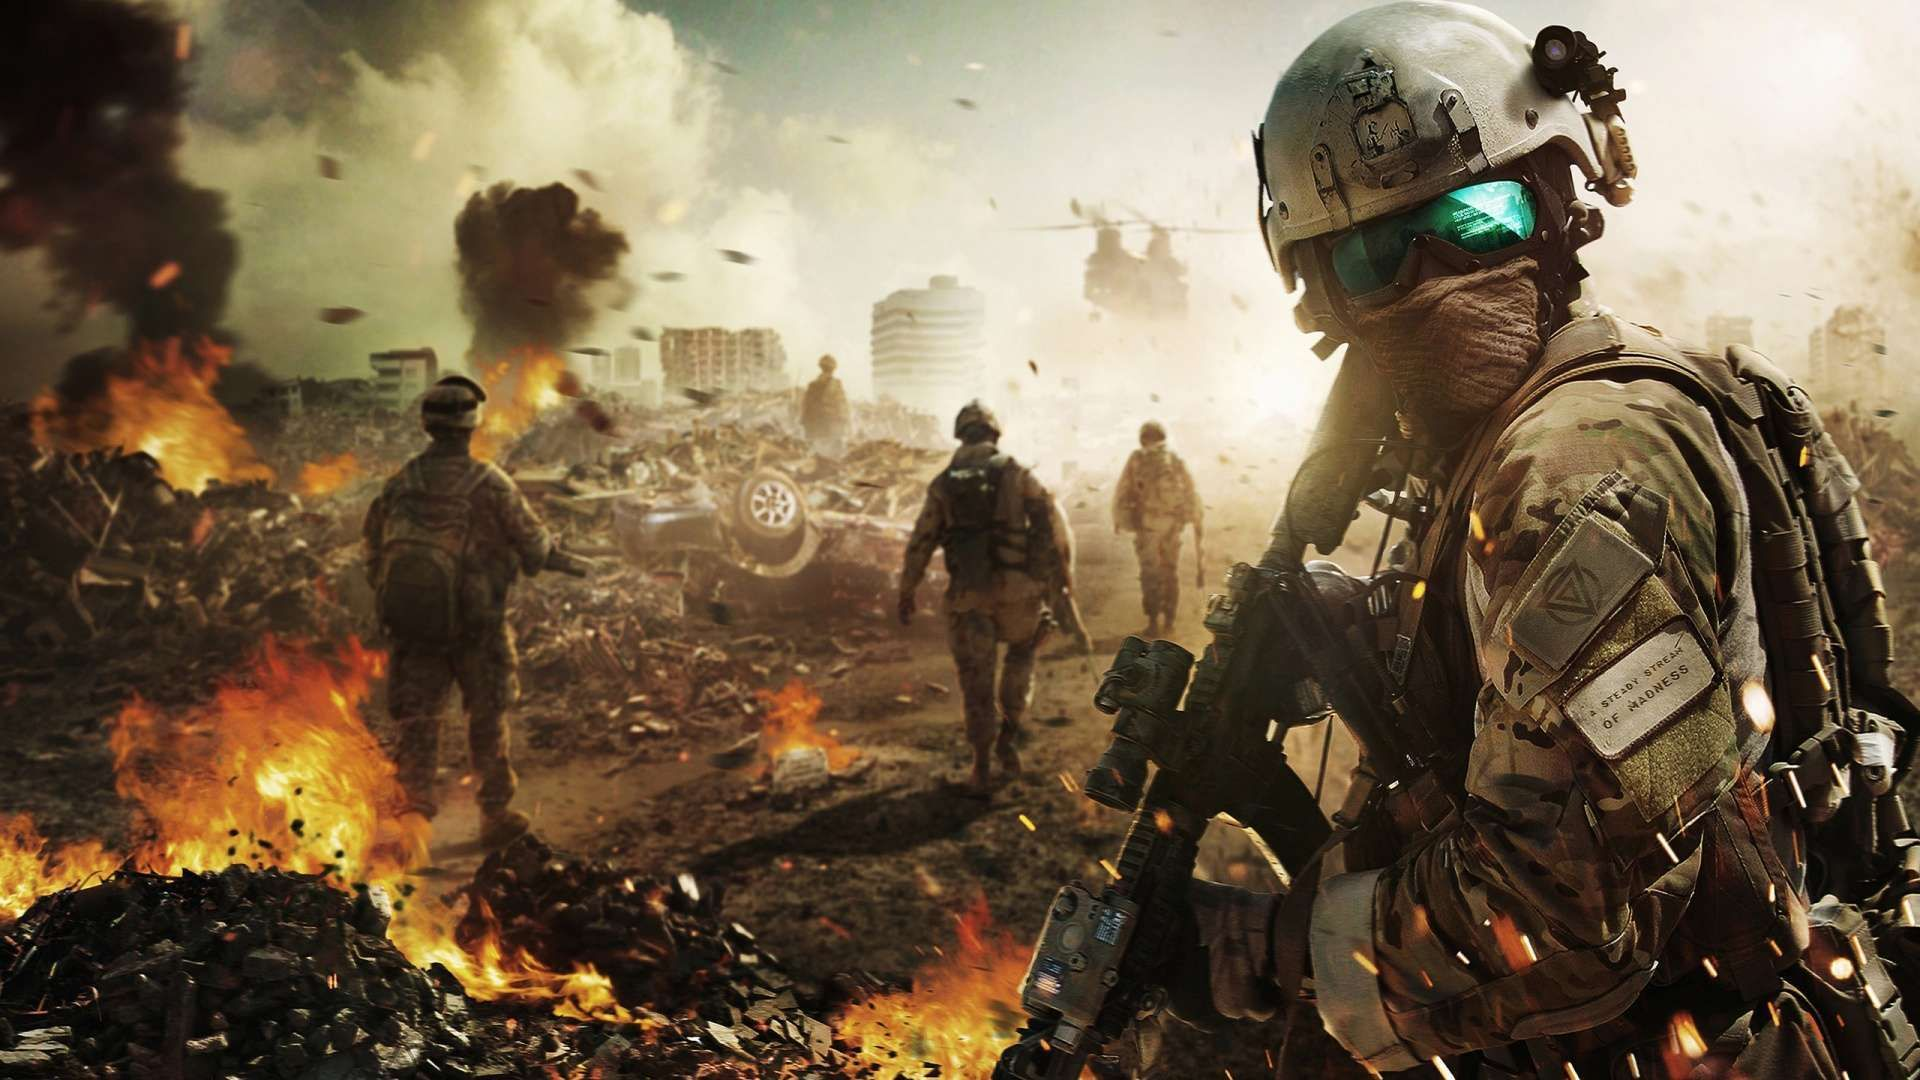 Battlefield Soldier HD Wallpaper 1080p Gaming wallpapers